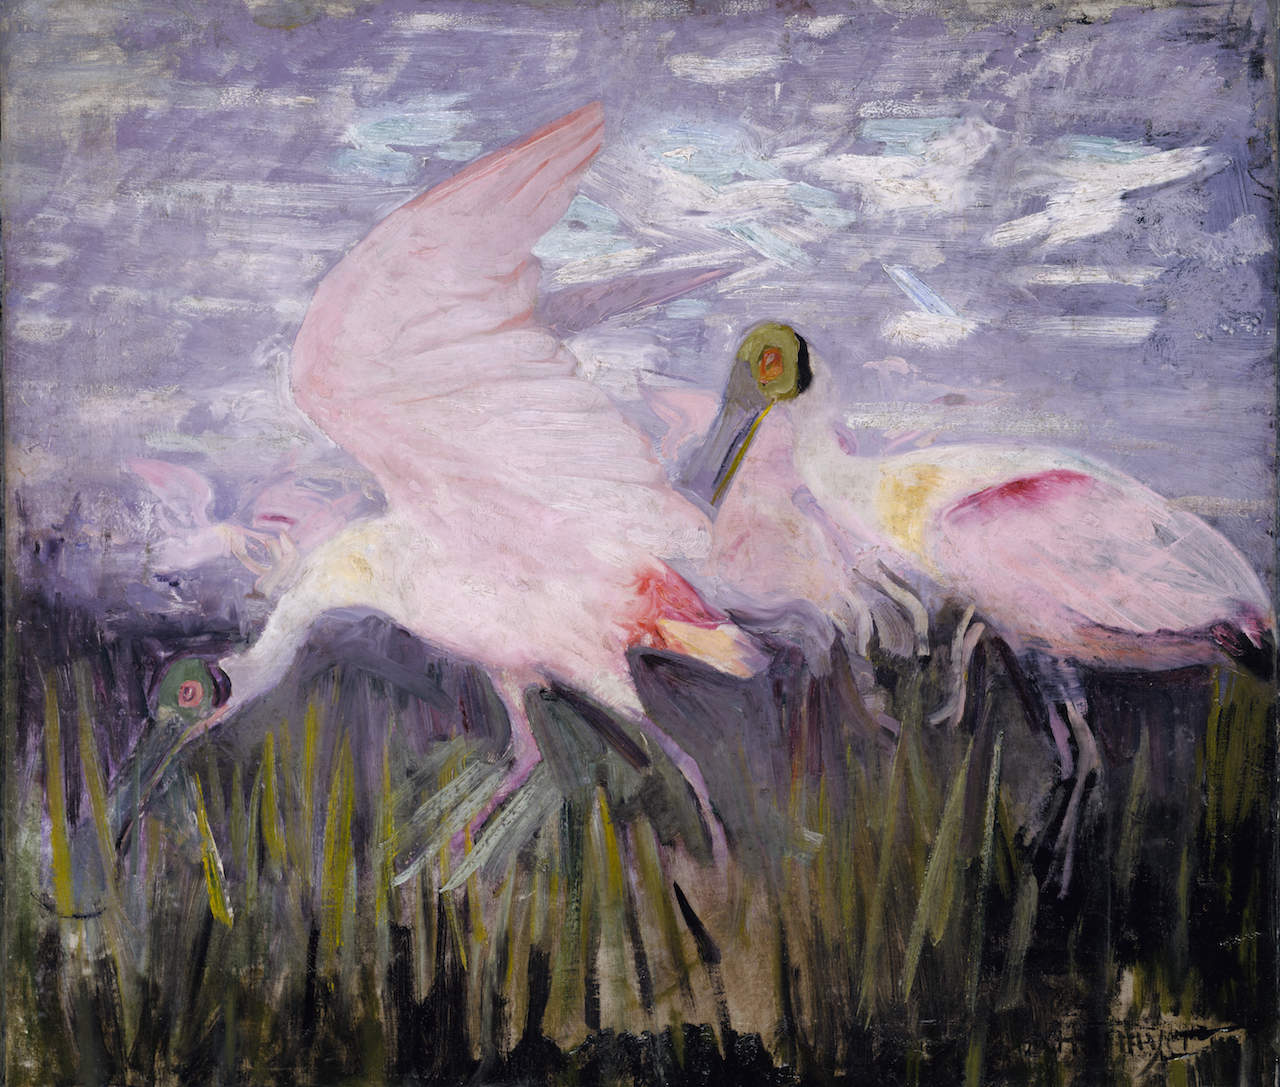 """Abbott Handerson Thayer, """"Roseate Spoonbills,"""" study for 'Concealing Coloration in the Animal Kingdom' (1905-09), oil on paperboard (courtesy Smithsonian American Art Museum, gift of the heirs of Abbott Handerson Thayer)"""